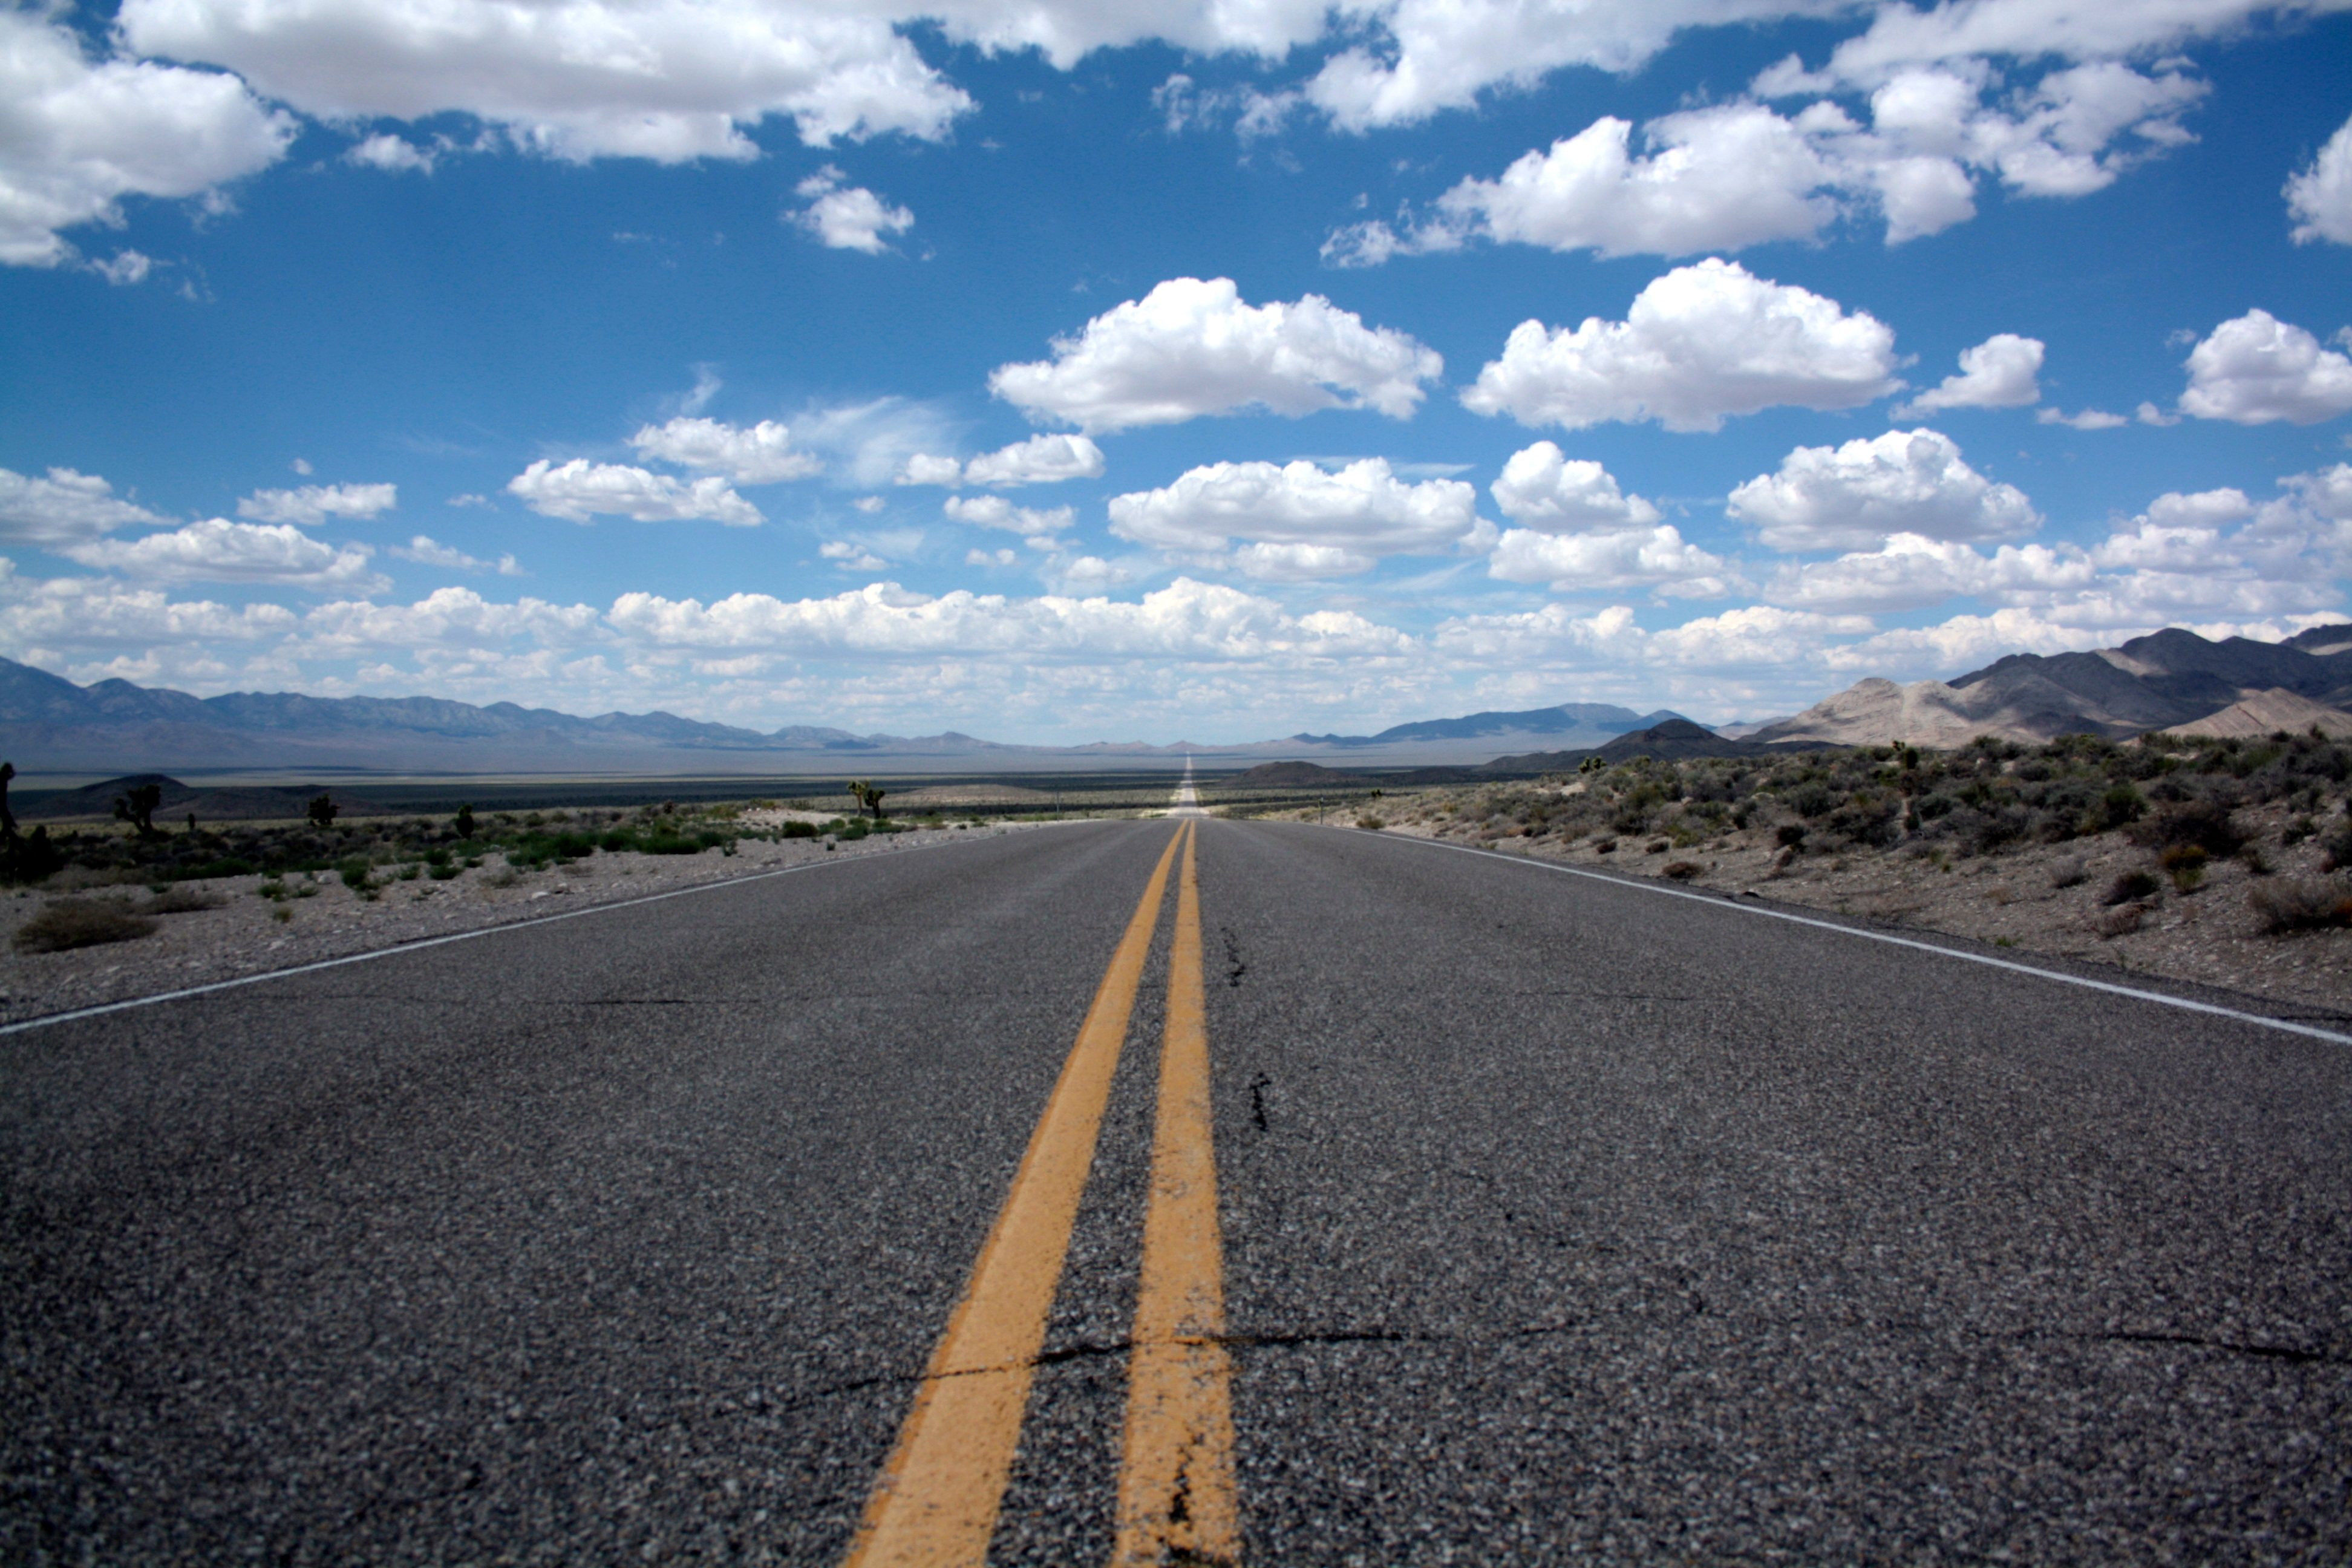 Road High Quality Background on Wallpapers Vista